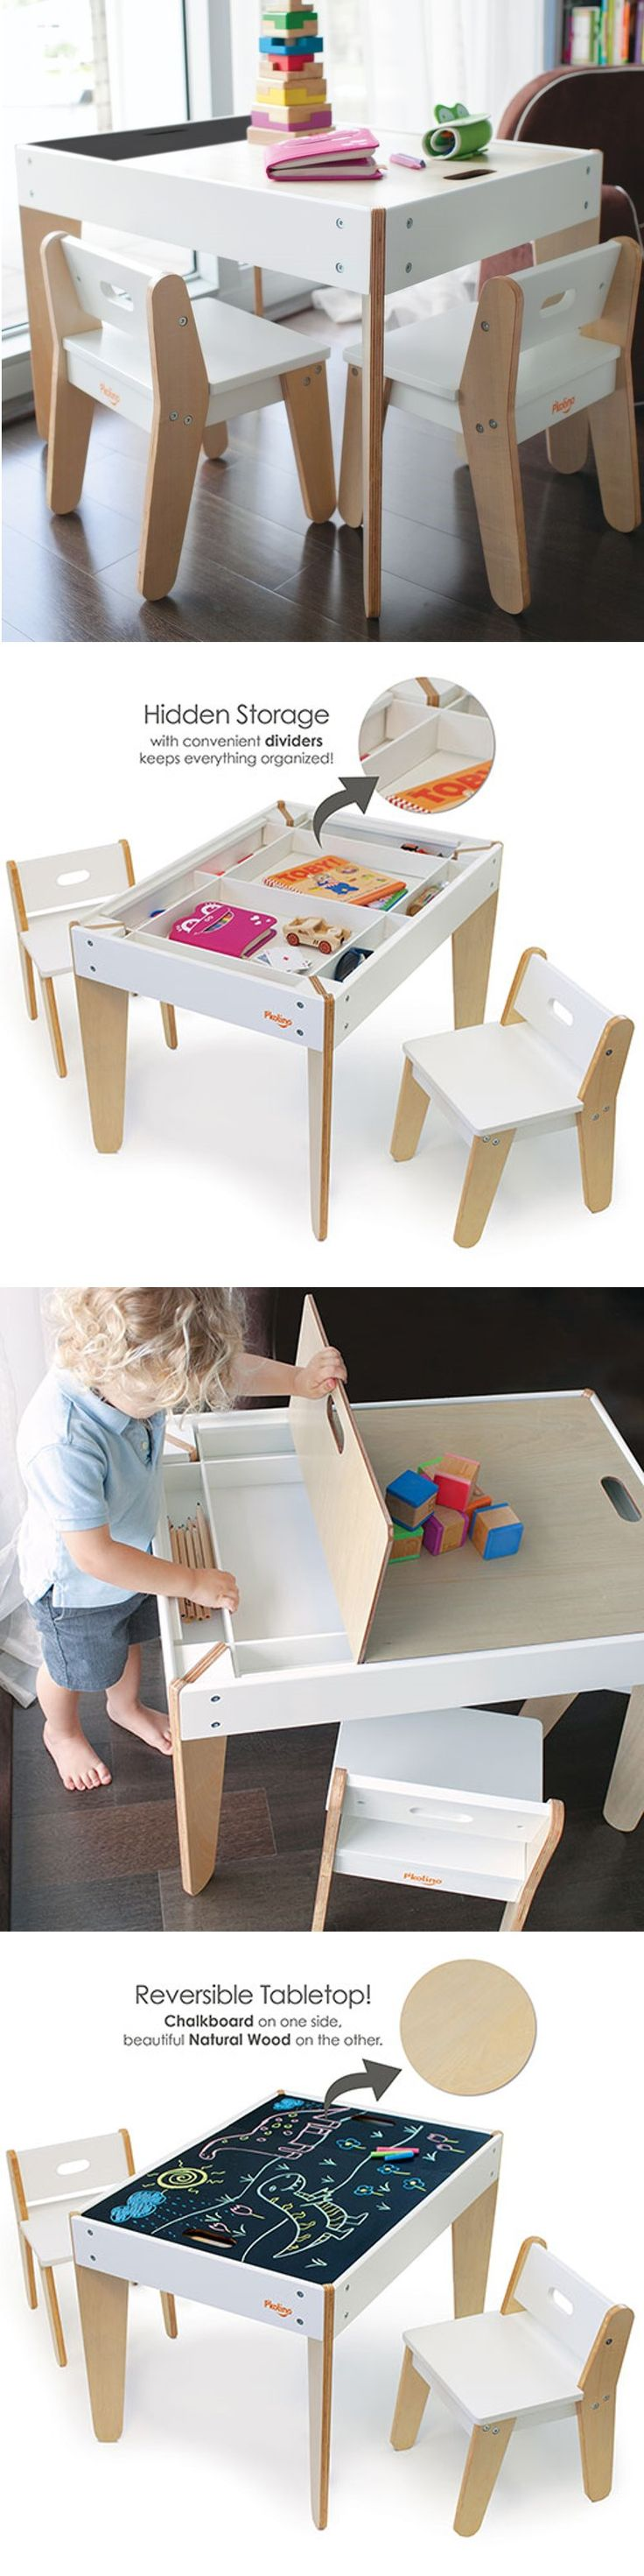 25 unique Kids play table ideas on Pinterest